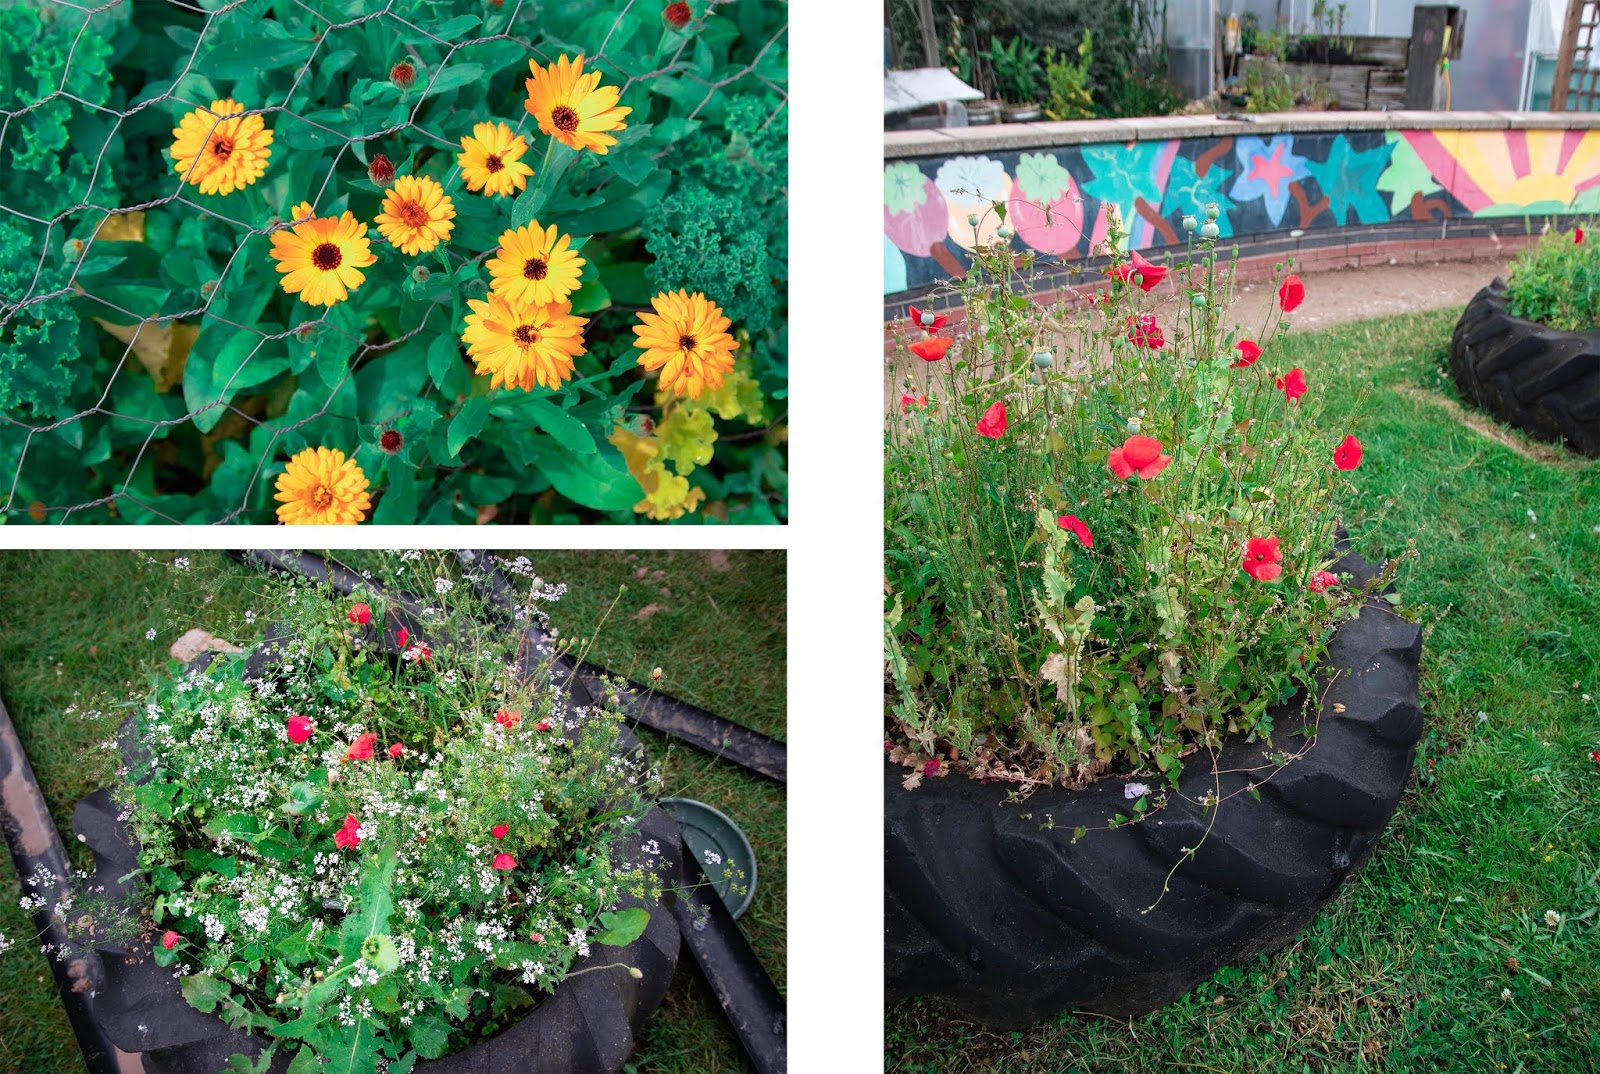 The Quirky Queer: Community Gardens - Tranquility in the City